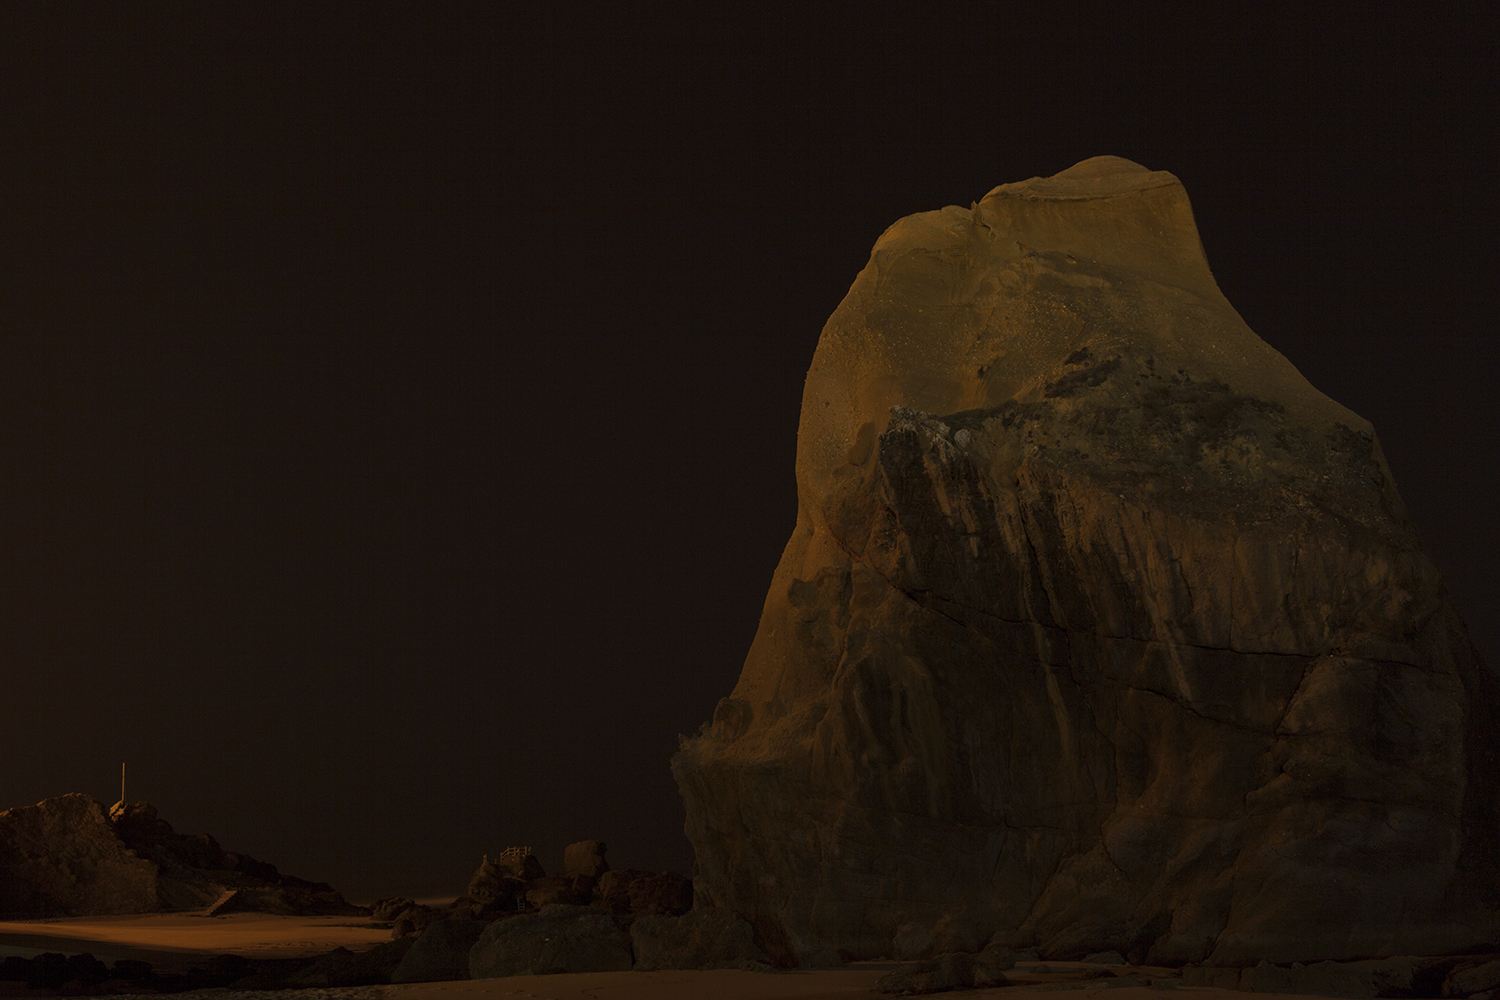 carina martins, we wander in circles through the night  and are consumed by fire - boulder at night